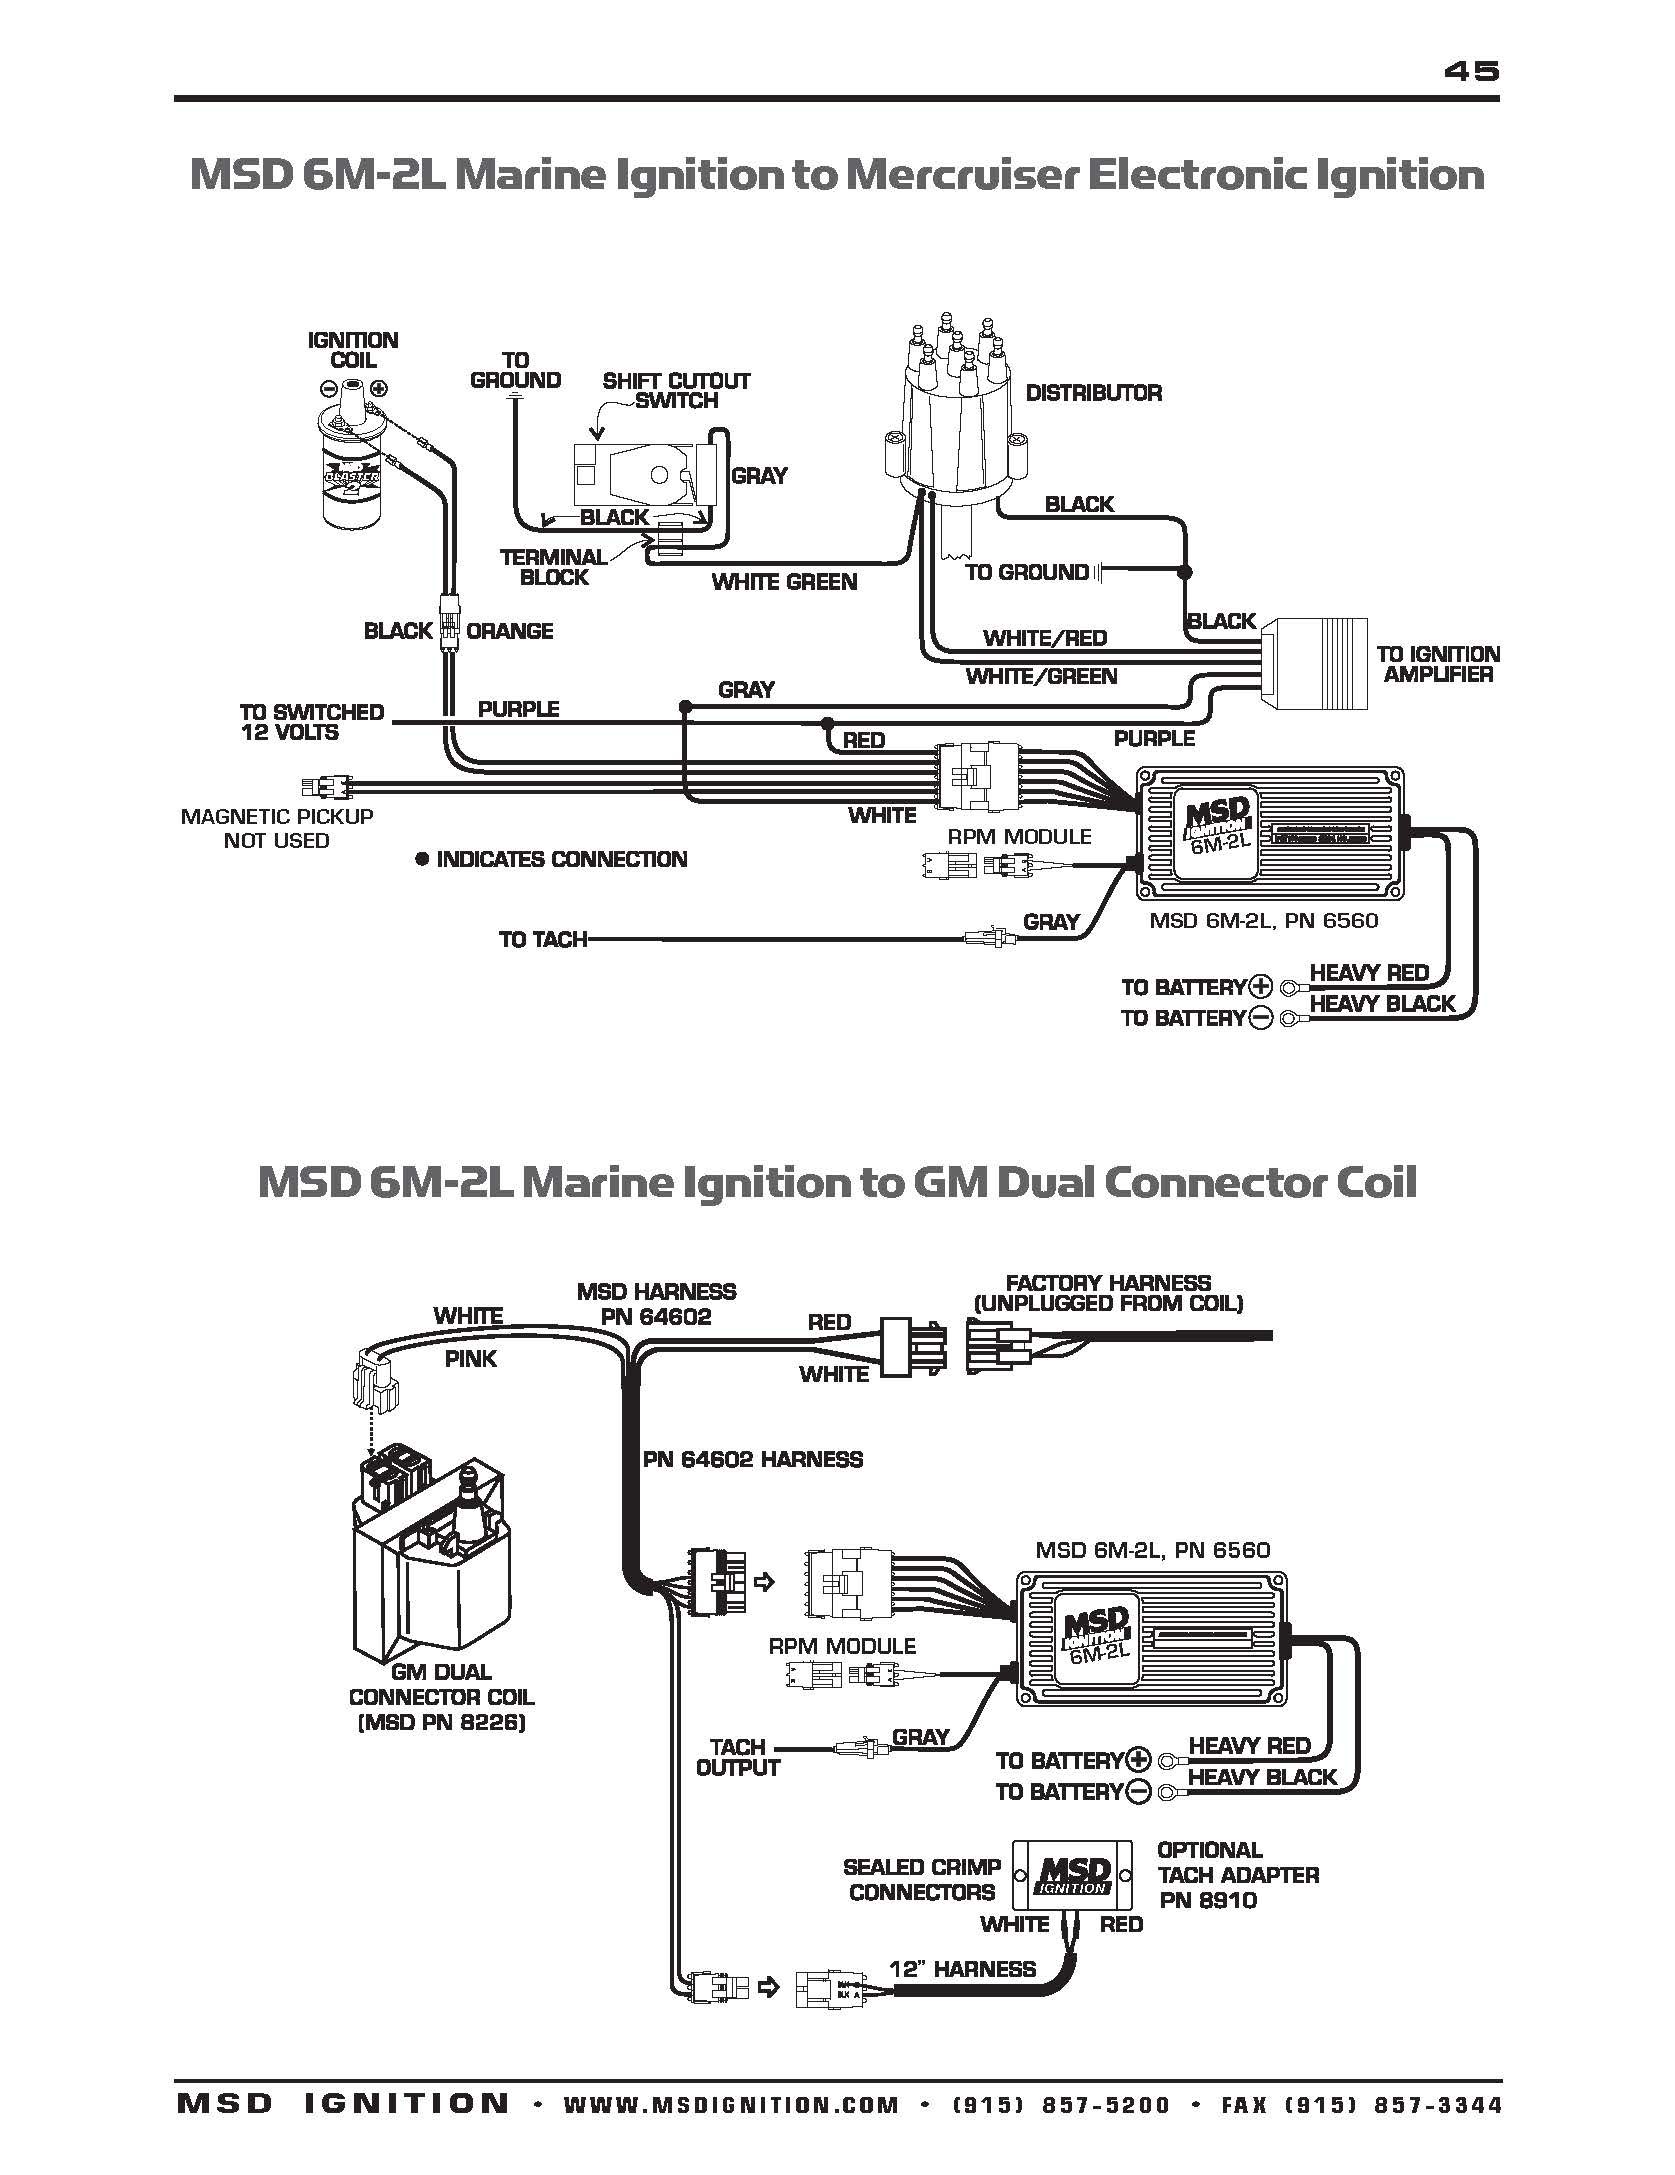 cdi ignition schematic or 5118  msd ignition wiring diagram for cdi wiring diagram  msd ignition wiring diagram for cdi